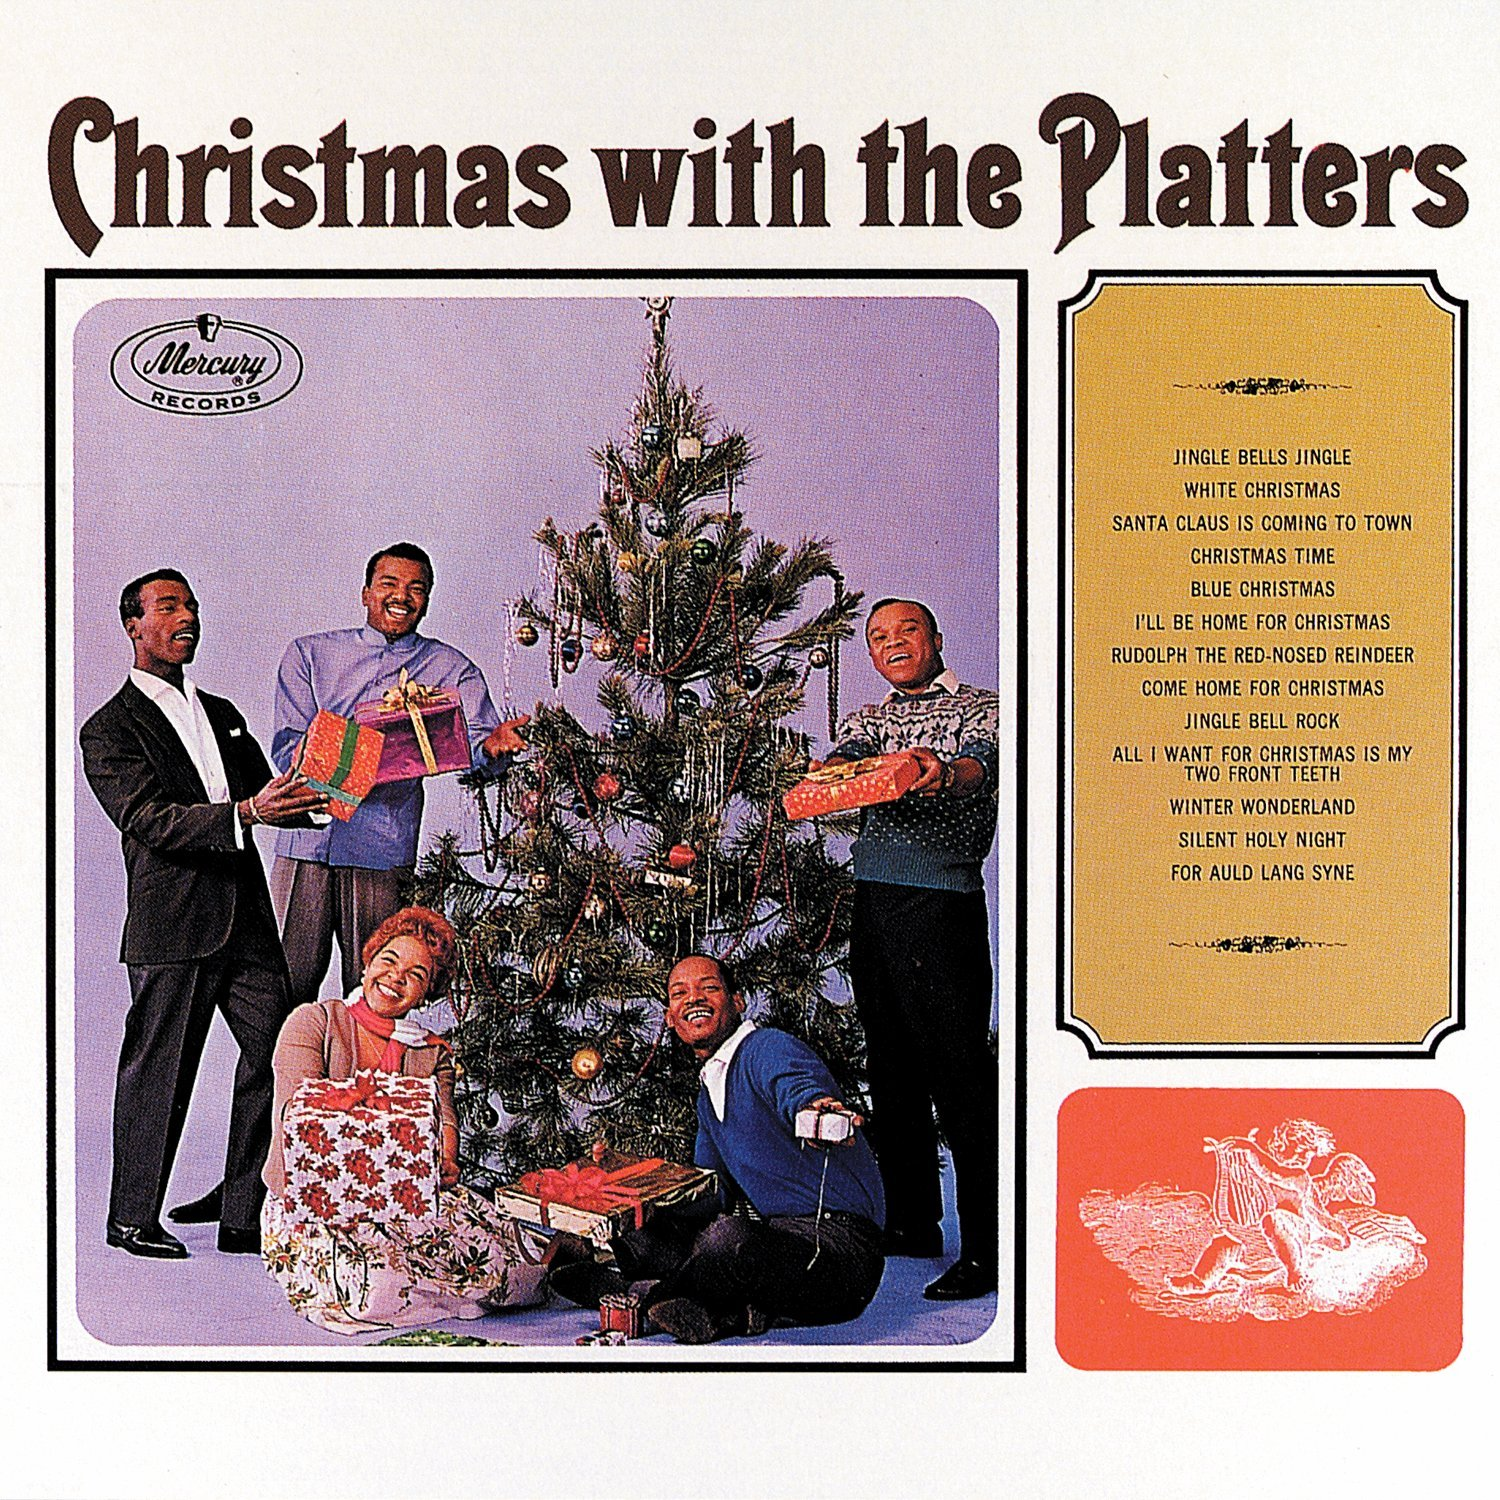 The Platters - Christmas With the Platters - Amazon.com Music